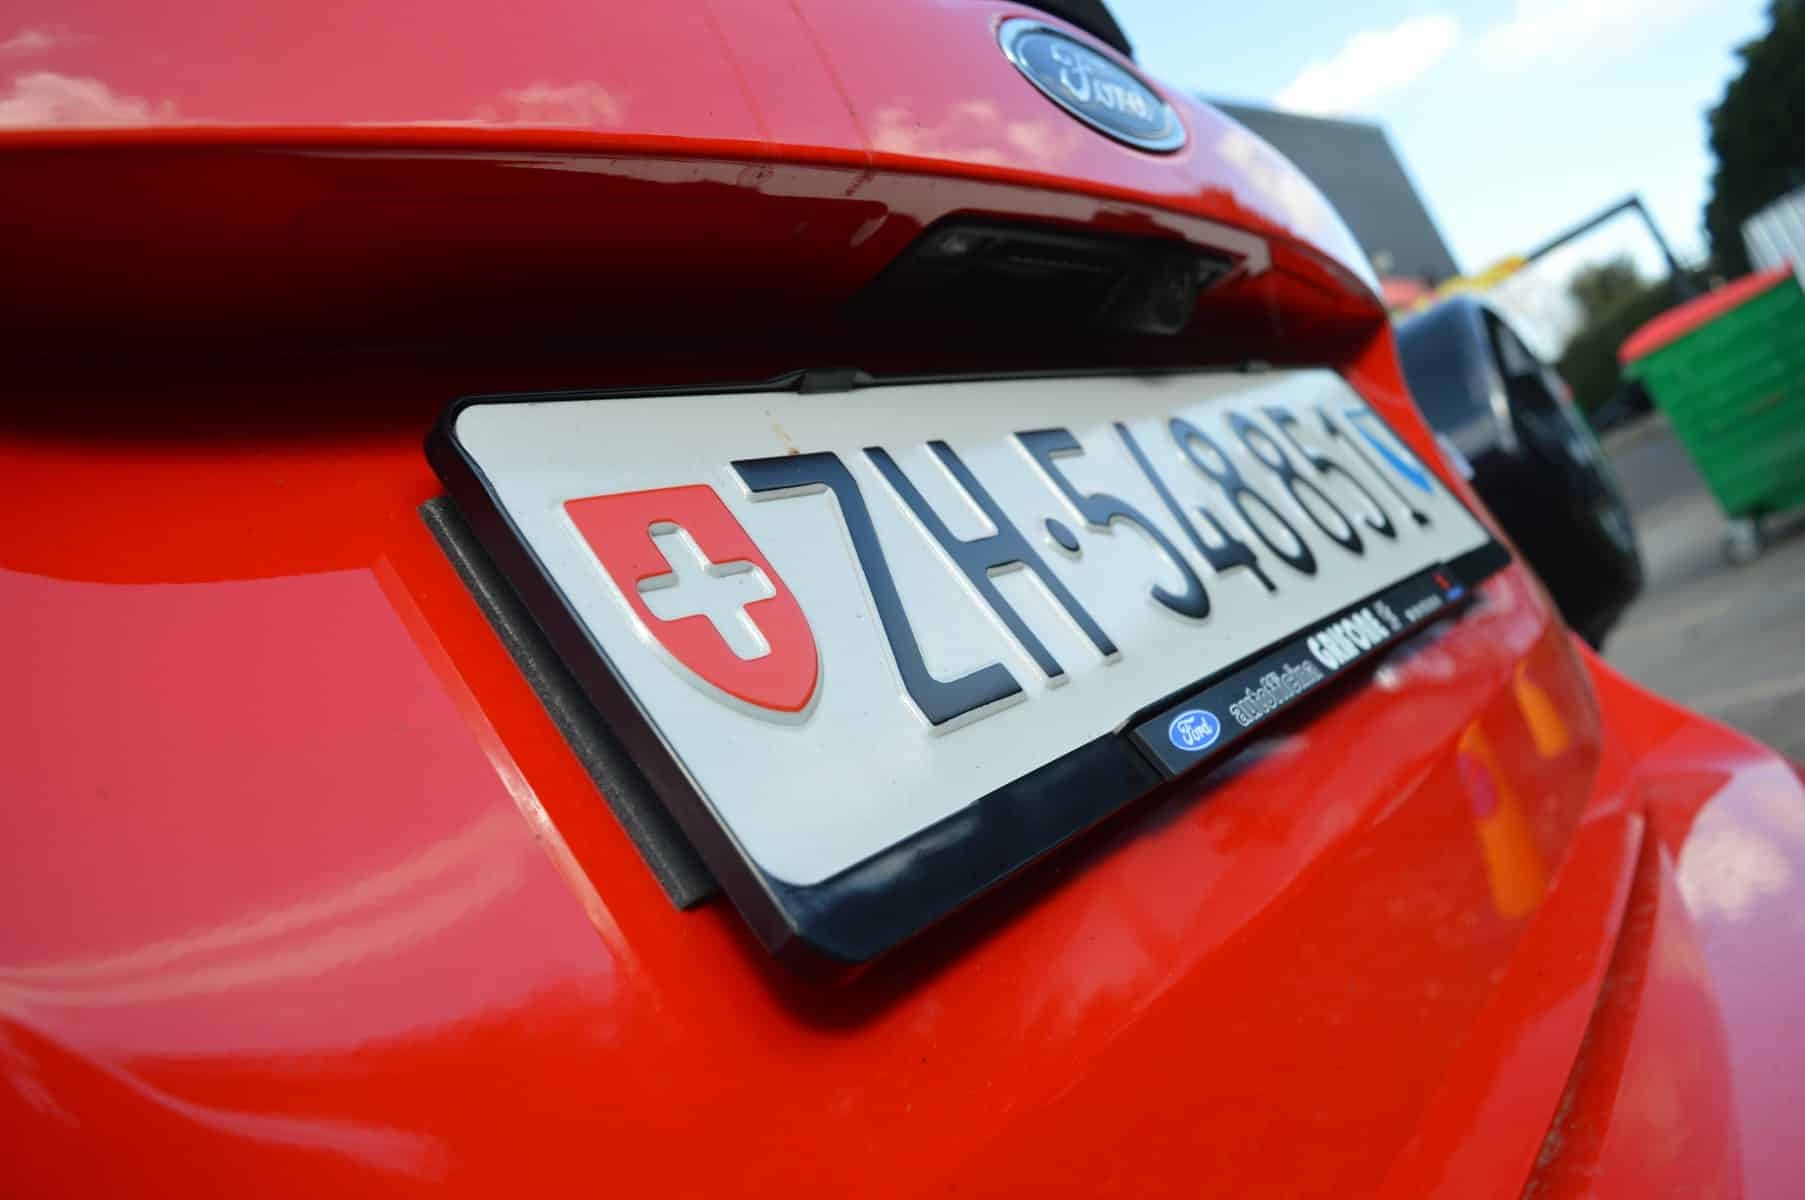 Importing a car from Switzerland into the UK